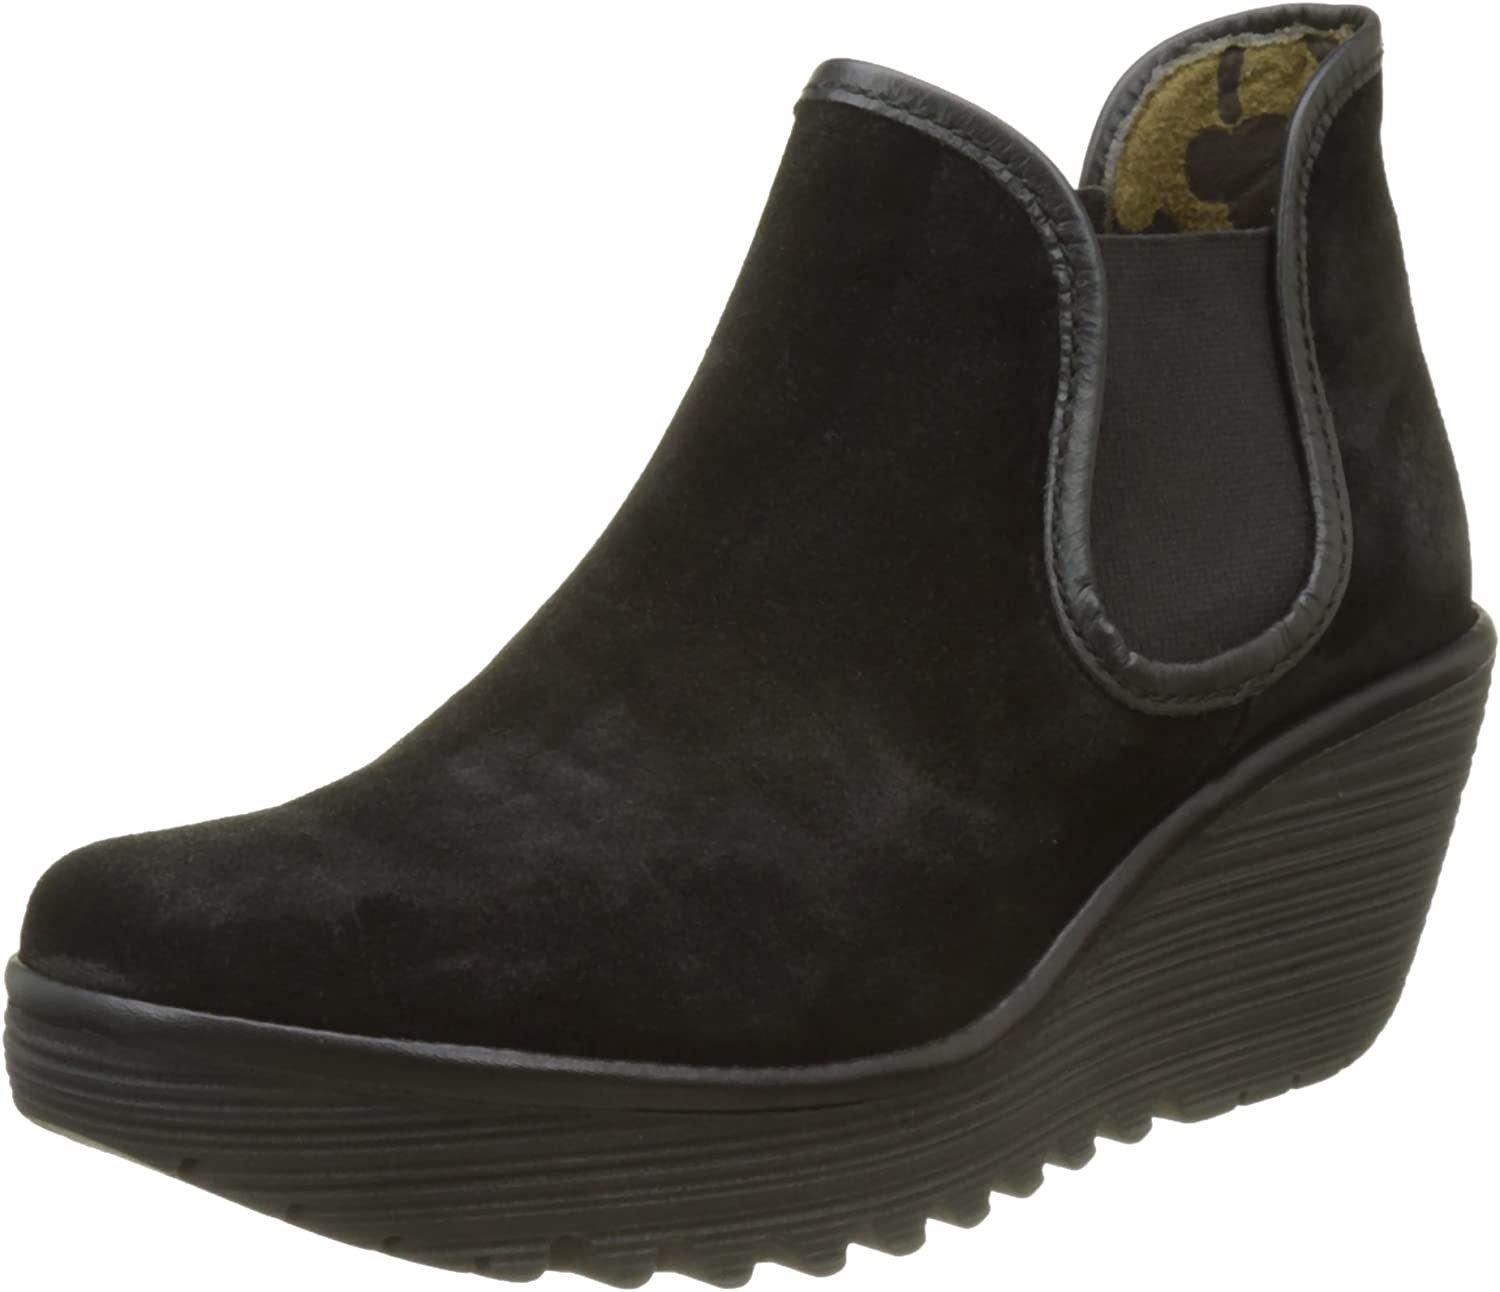 Fly London Womens Yat Suede Boots